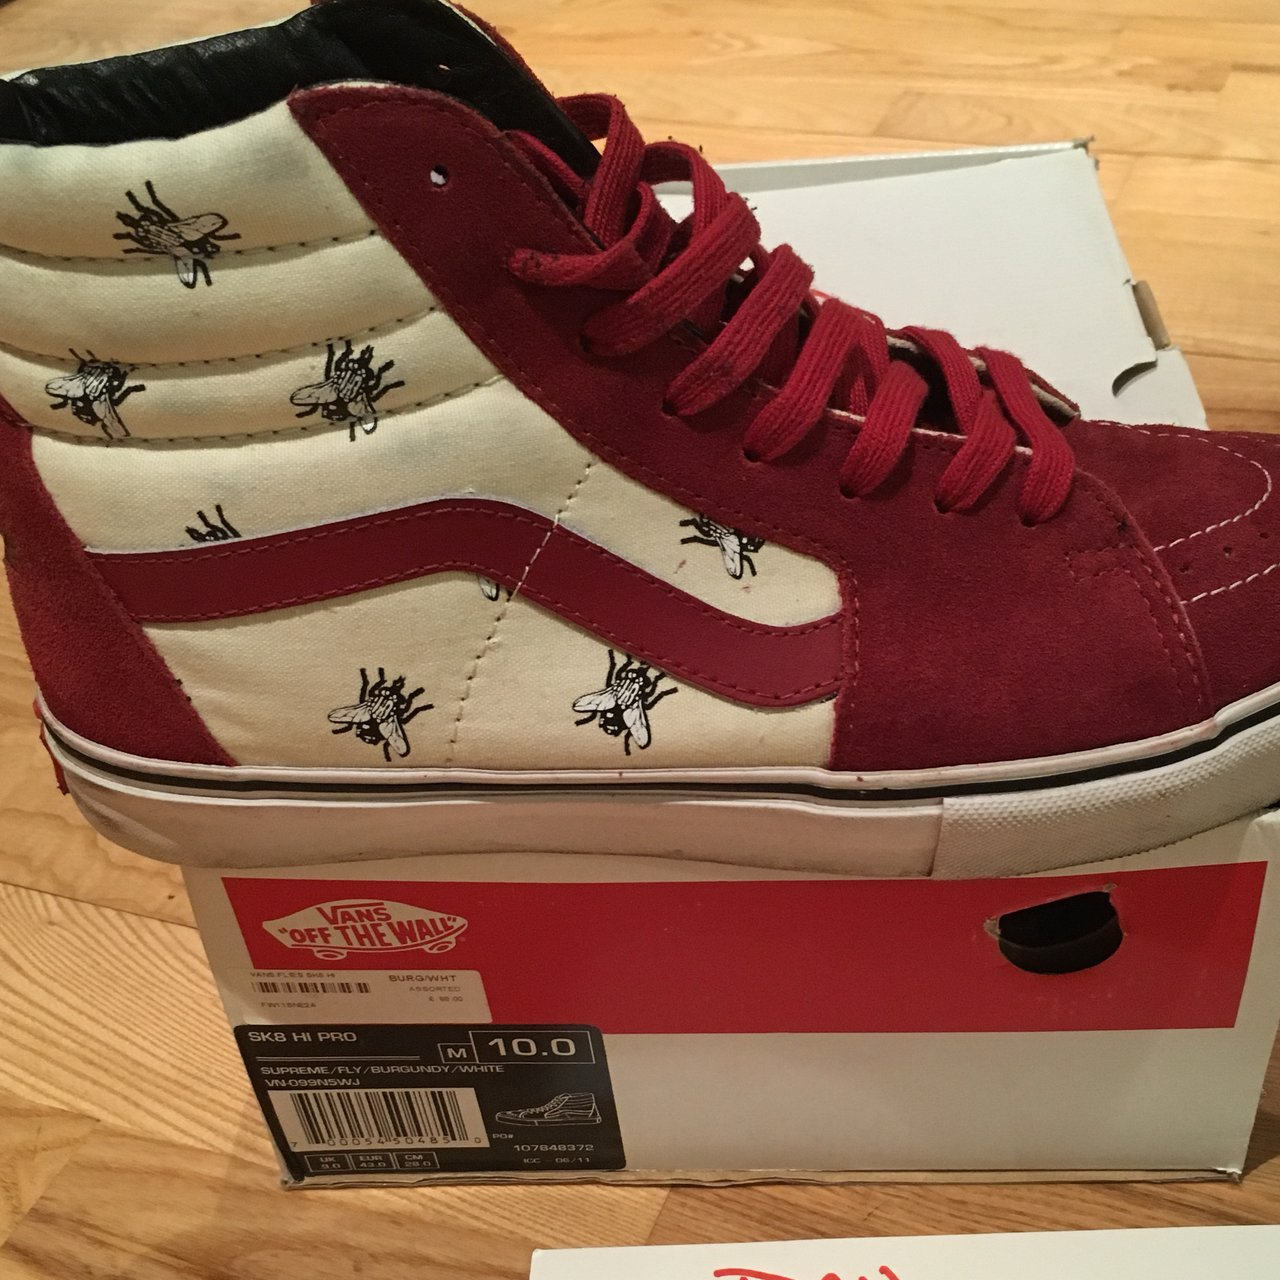 3c2ad5455ca092 Supreme x vans  flies  sk8-hi Uk 9 Worn but in good for age - Depop